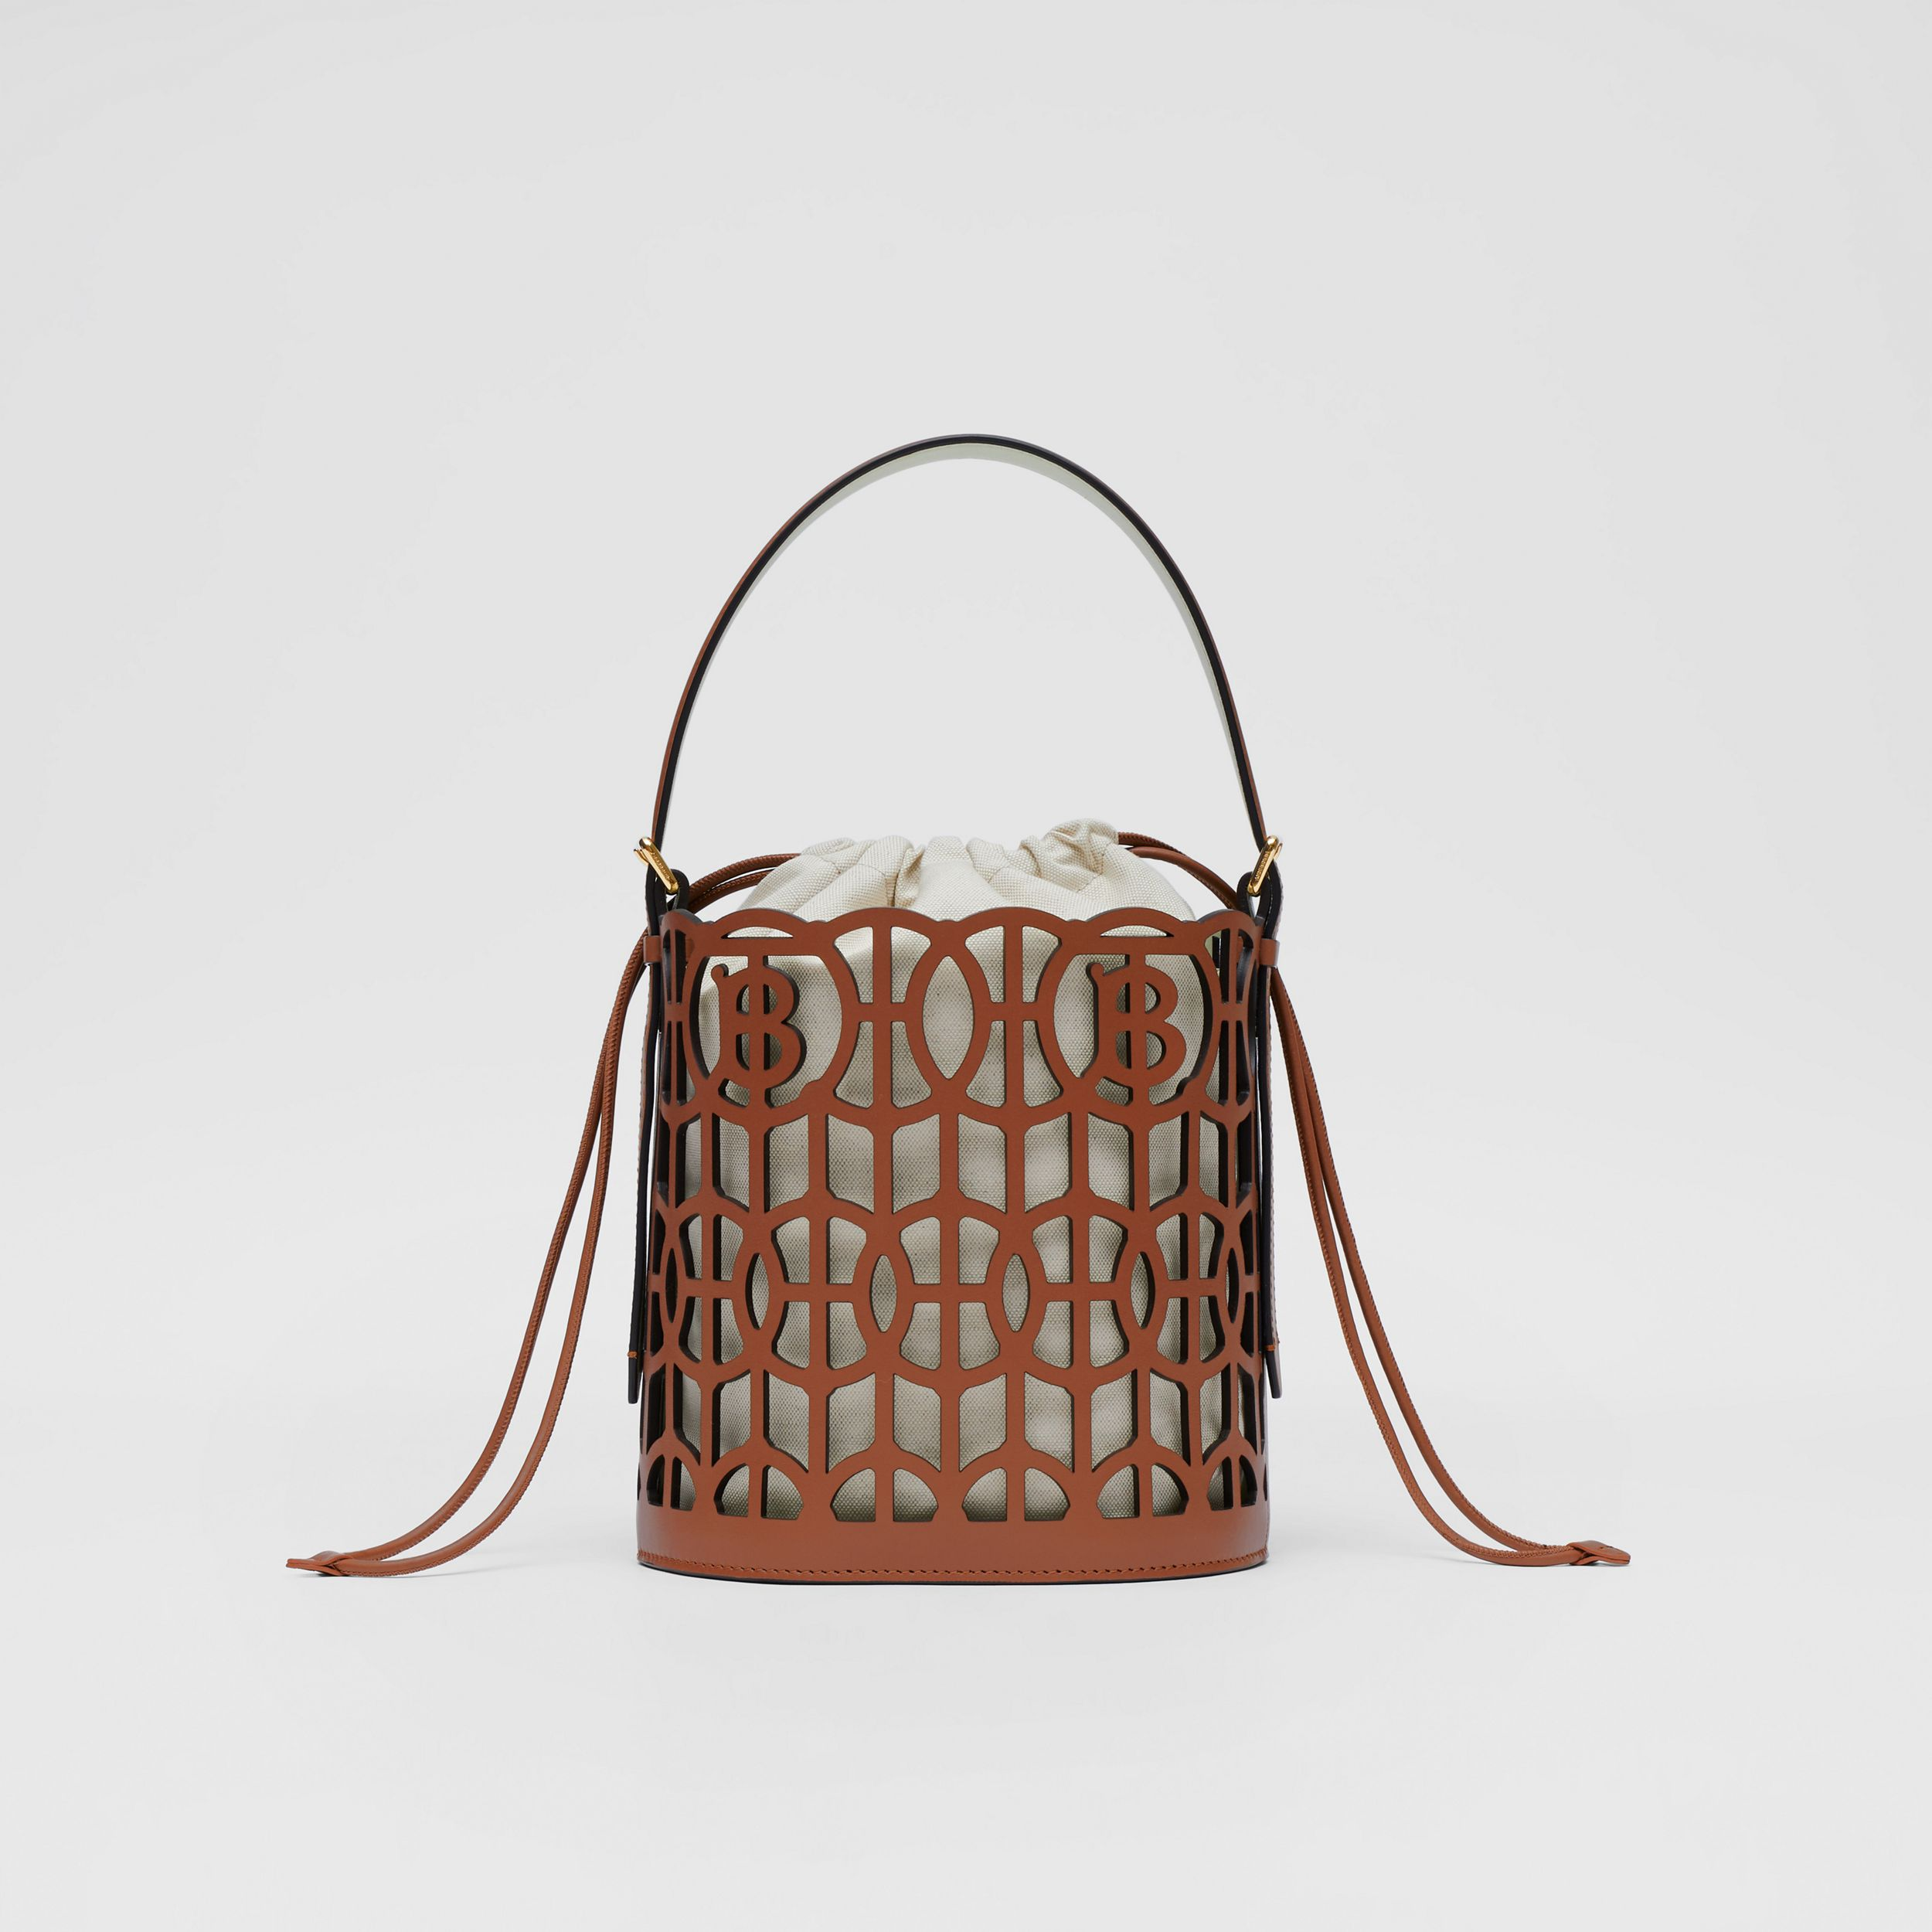 Leather Rose Bucket Bag in Tan - Women | Burberry Hong Kong S.A.R. - 1